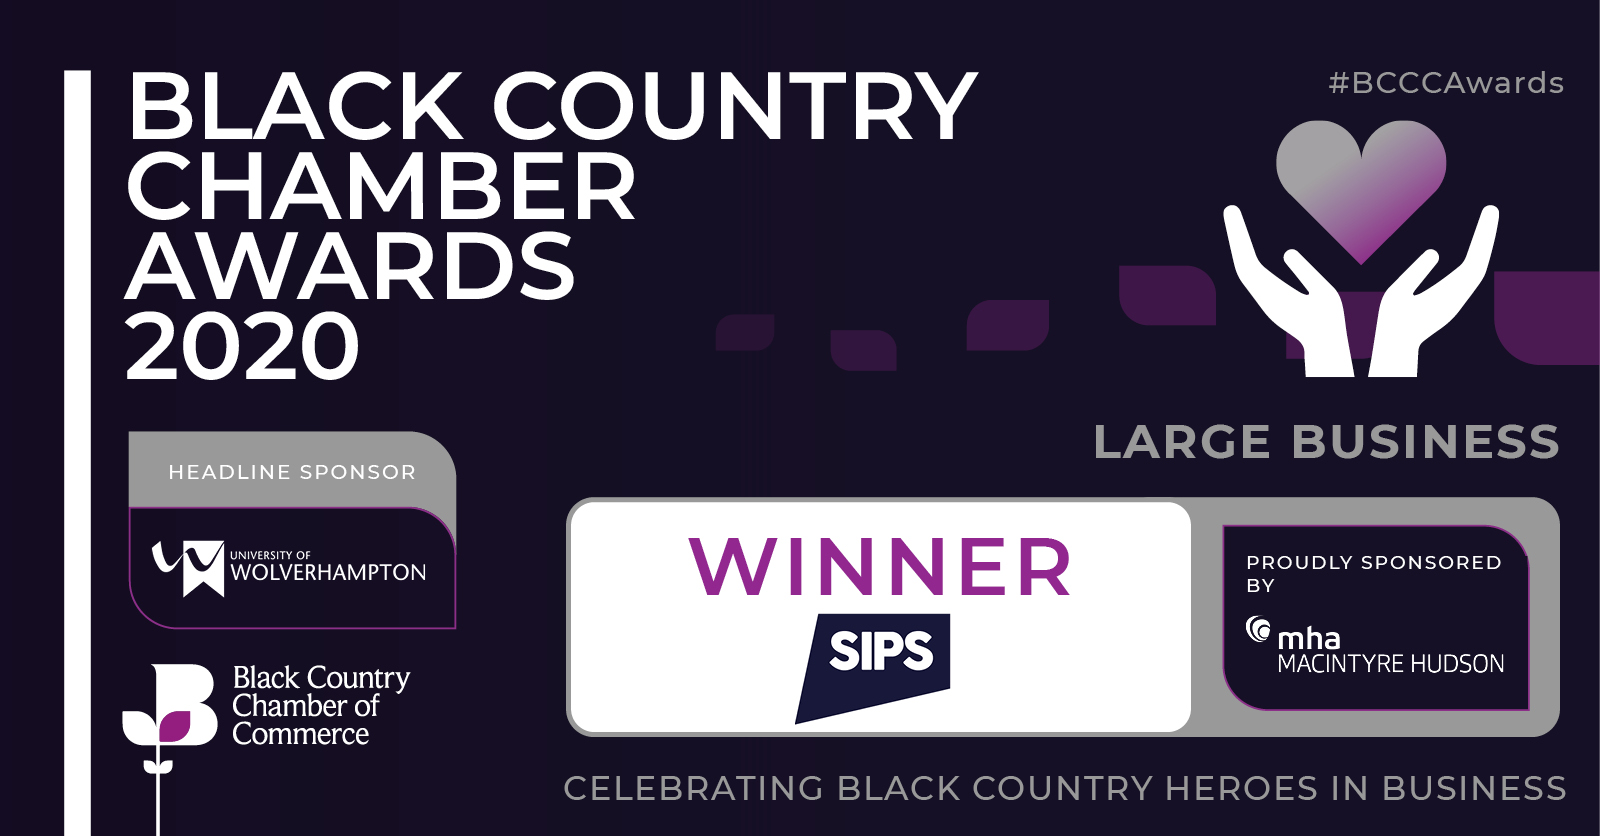 Black Country Chamber Awards 2020 - Winner